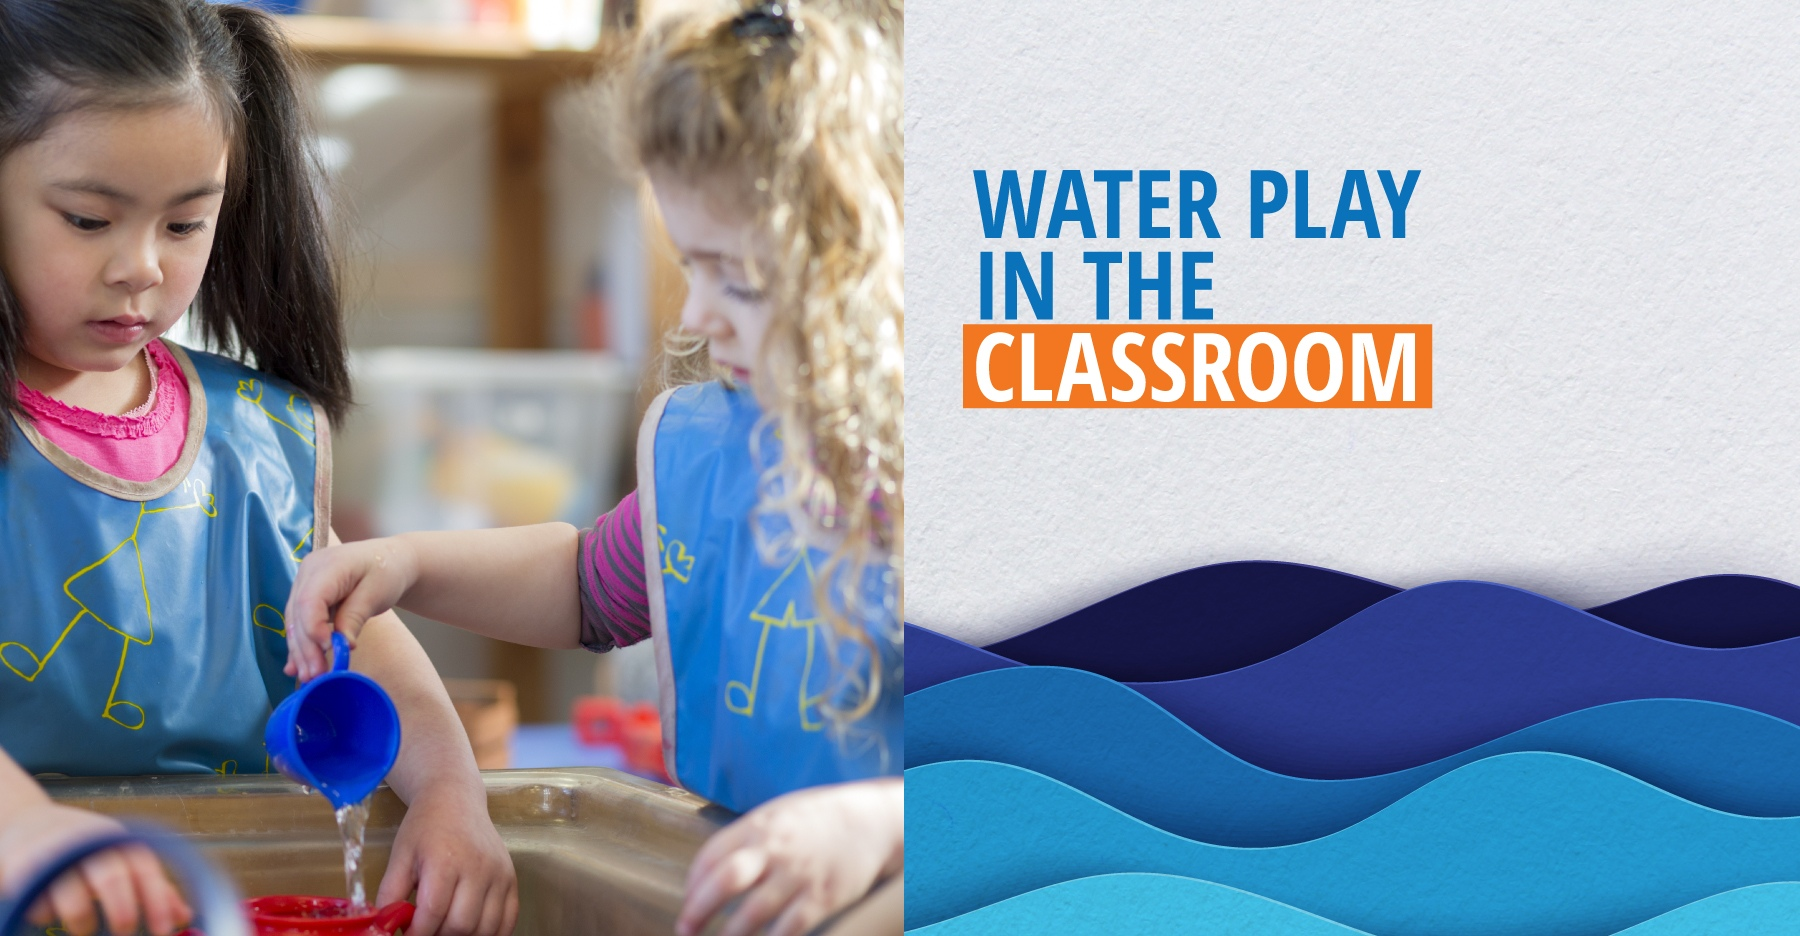 Water play activities to support learning